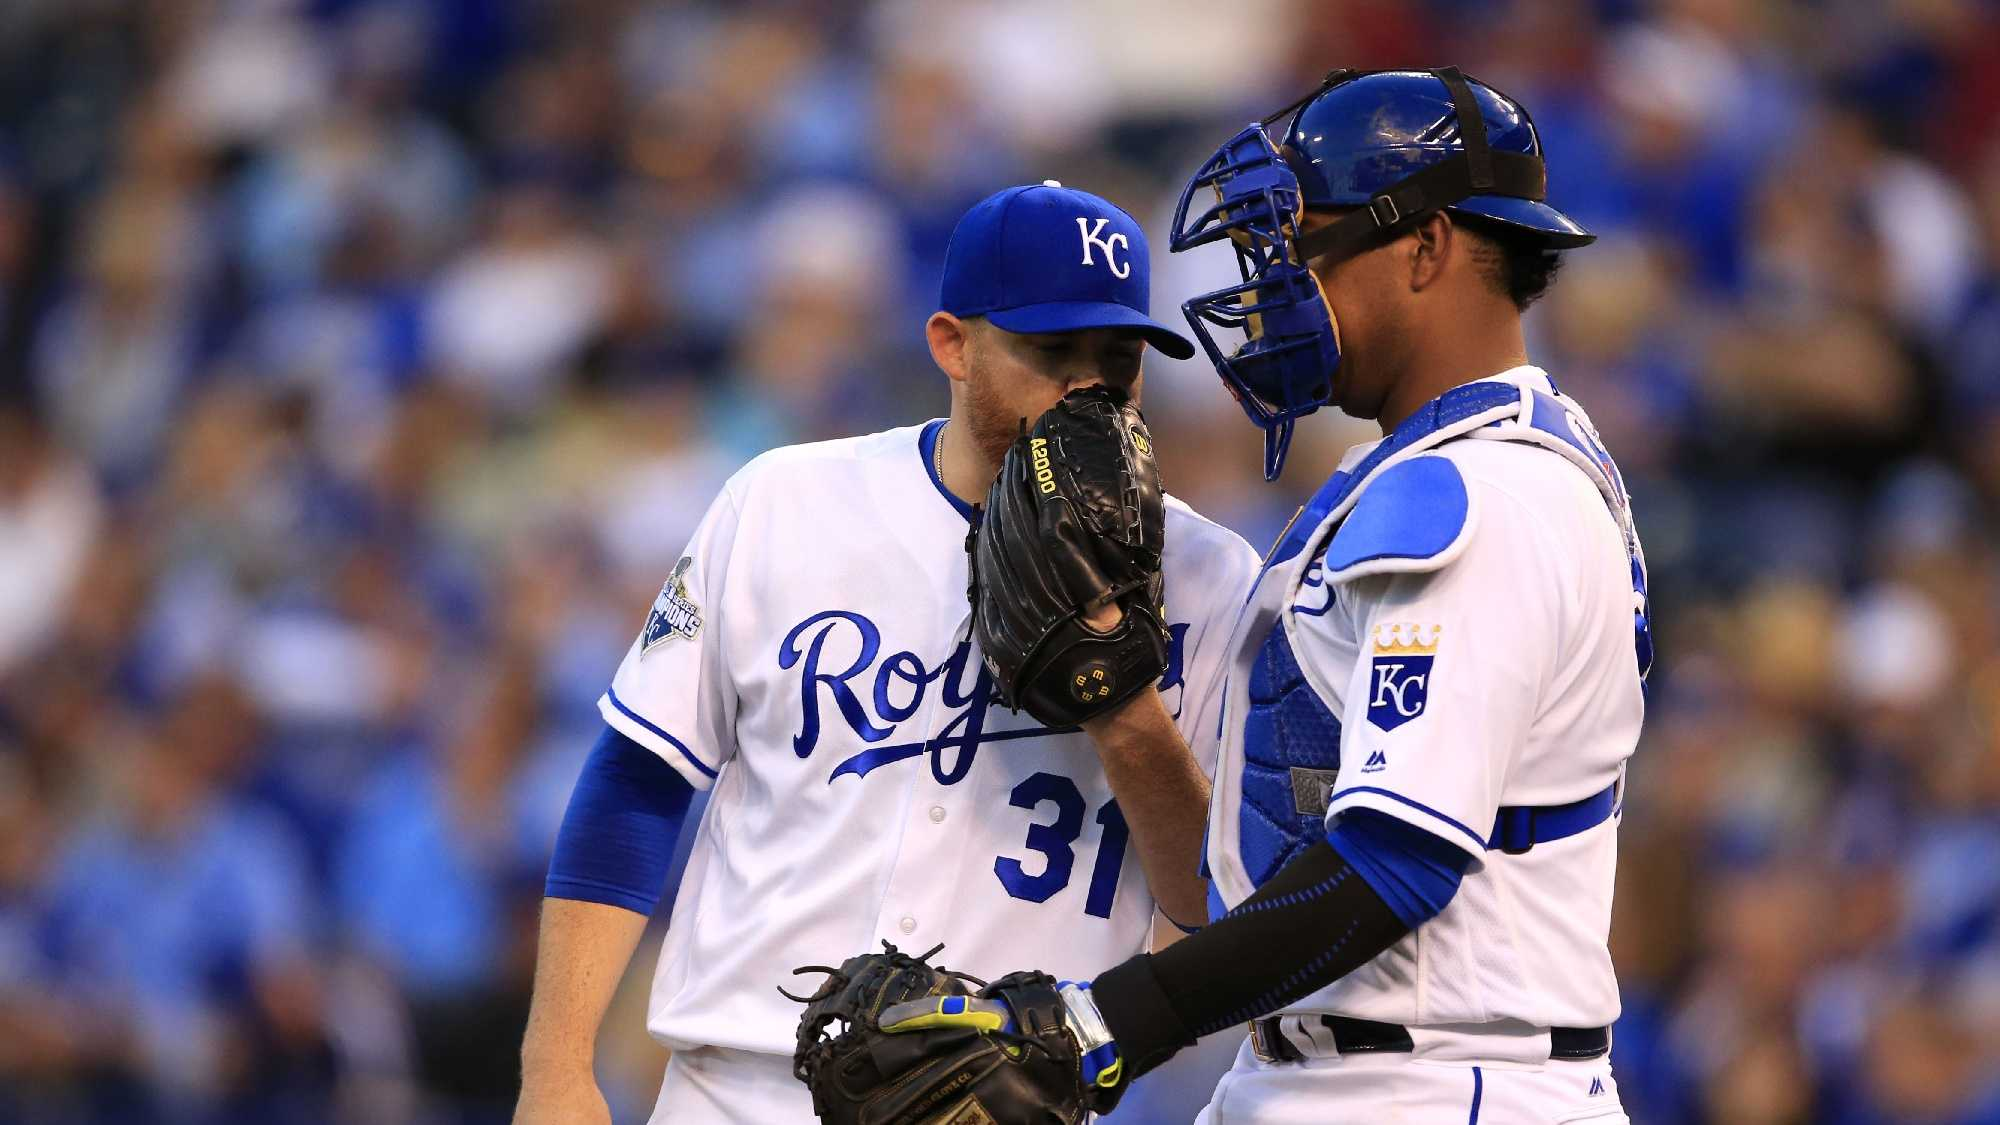 Kansas City Royals starting pitcher Ian Kennedy (31) and catcher Salvador Perez during a baseball game against the Detroit Tigers at Kauffman Stadium in Kansas City, Mo., Wednesday, April 20, 2016. (AP Photo/Orlin Wagner)